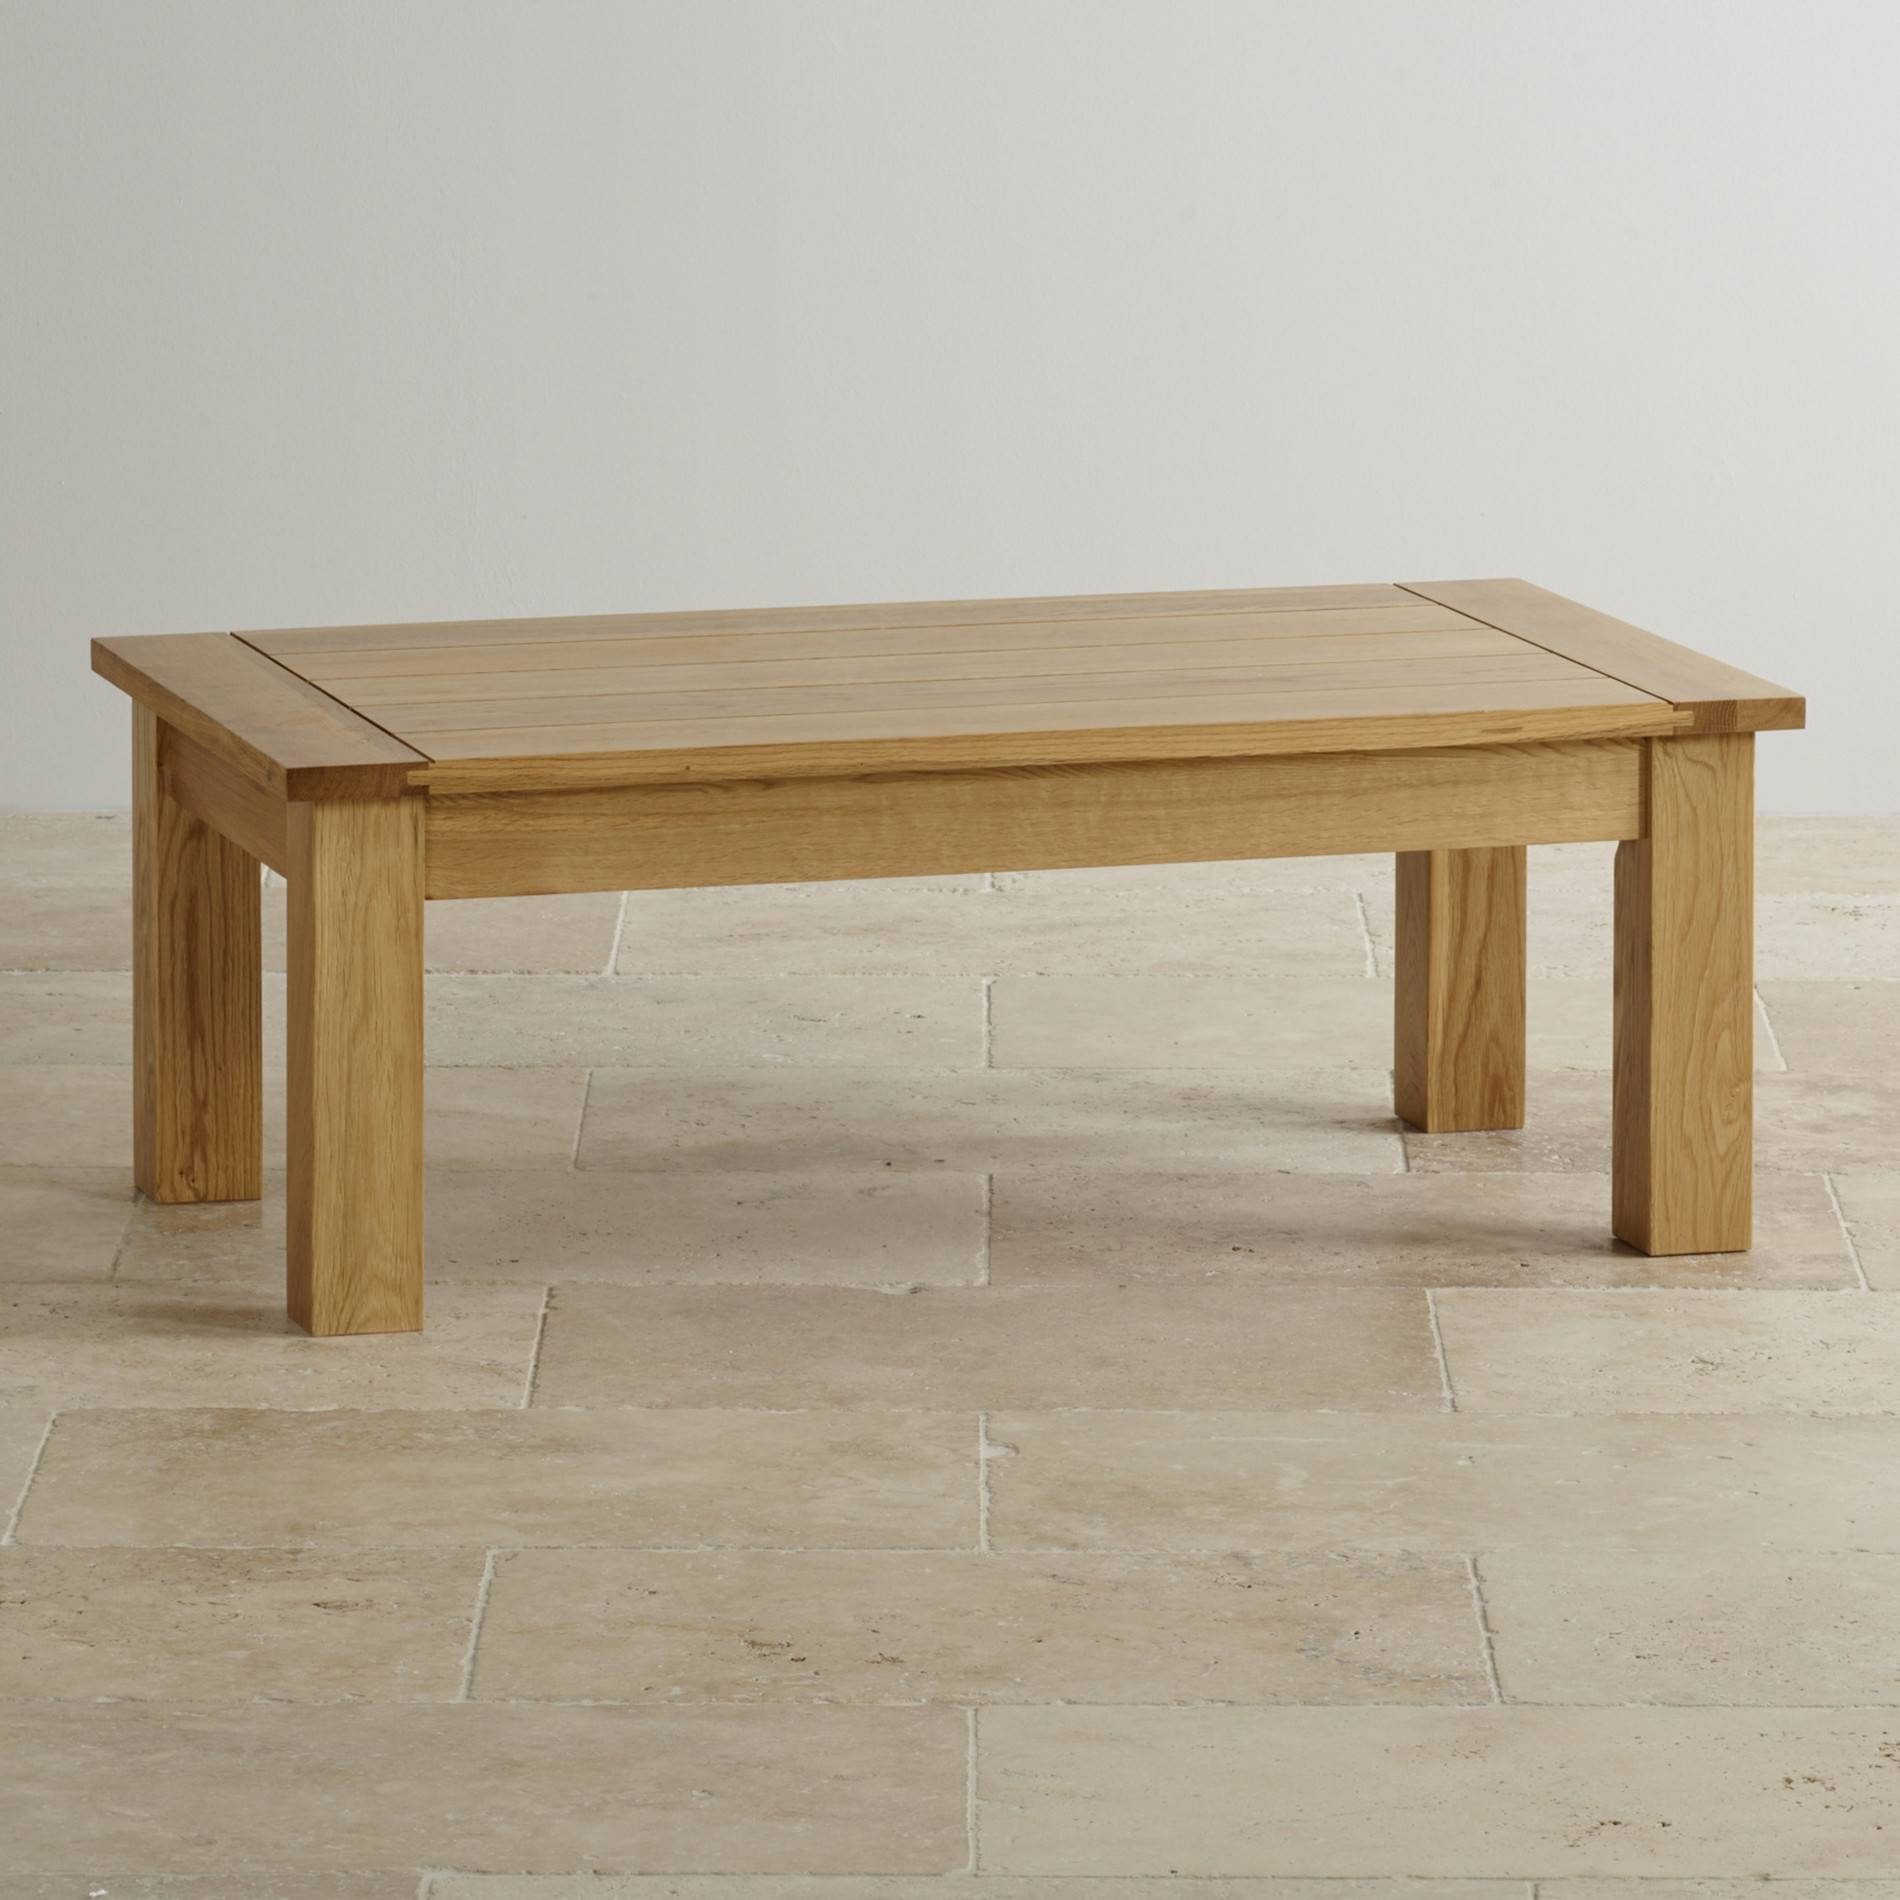 Contemporary Coffee Table In Natural Solid Oak | Oak Furniture Land within Oak Wood Coffee Tables (Image 5 of 15)